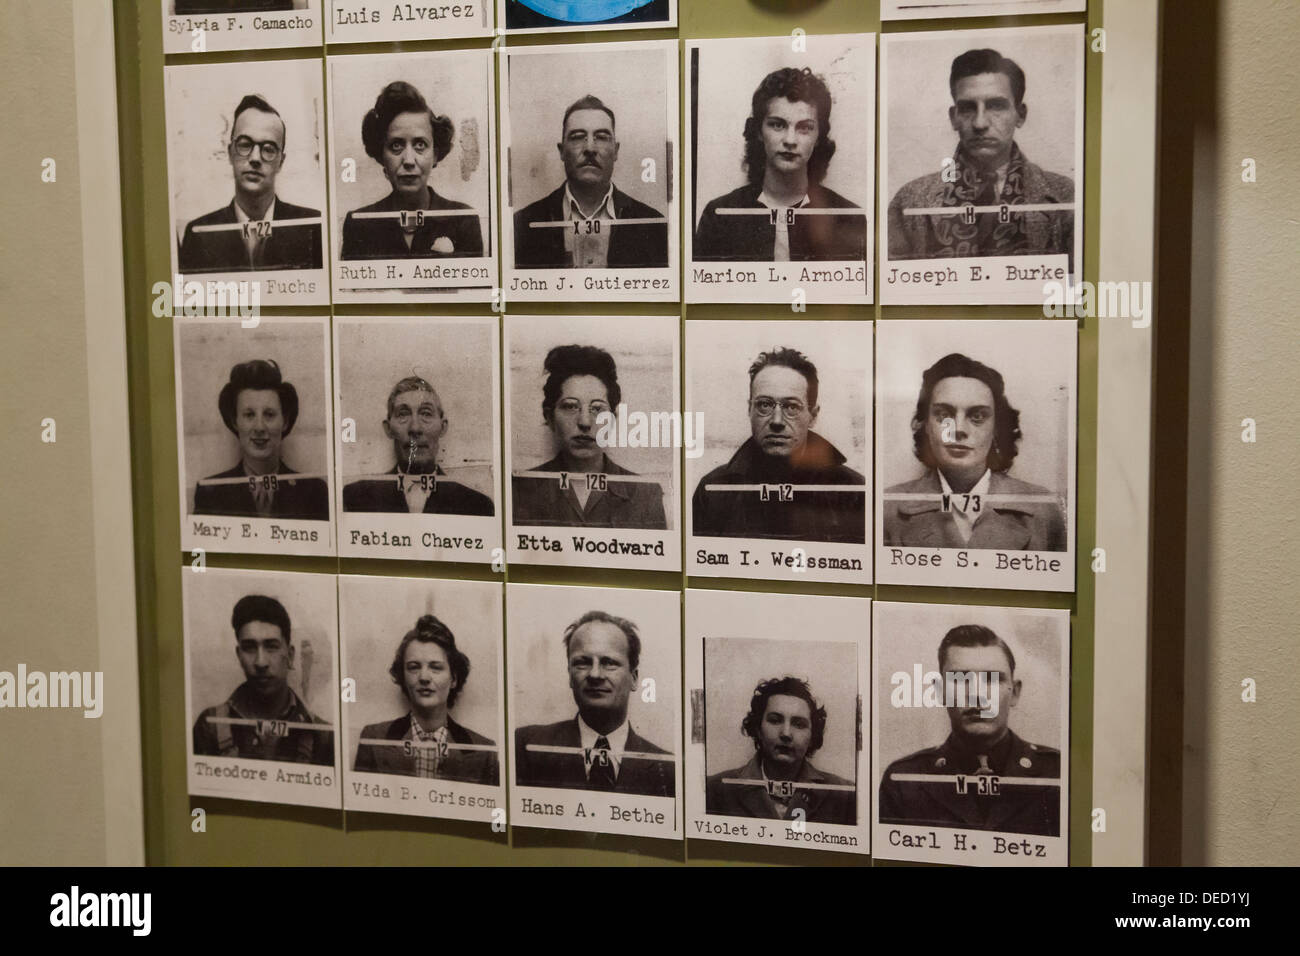 Manhattan Project scientists ID photos - Stock Image